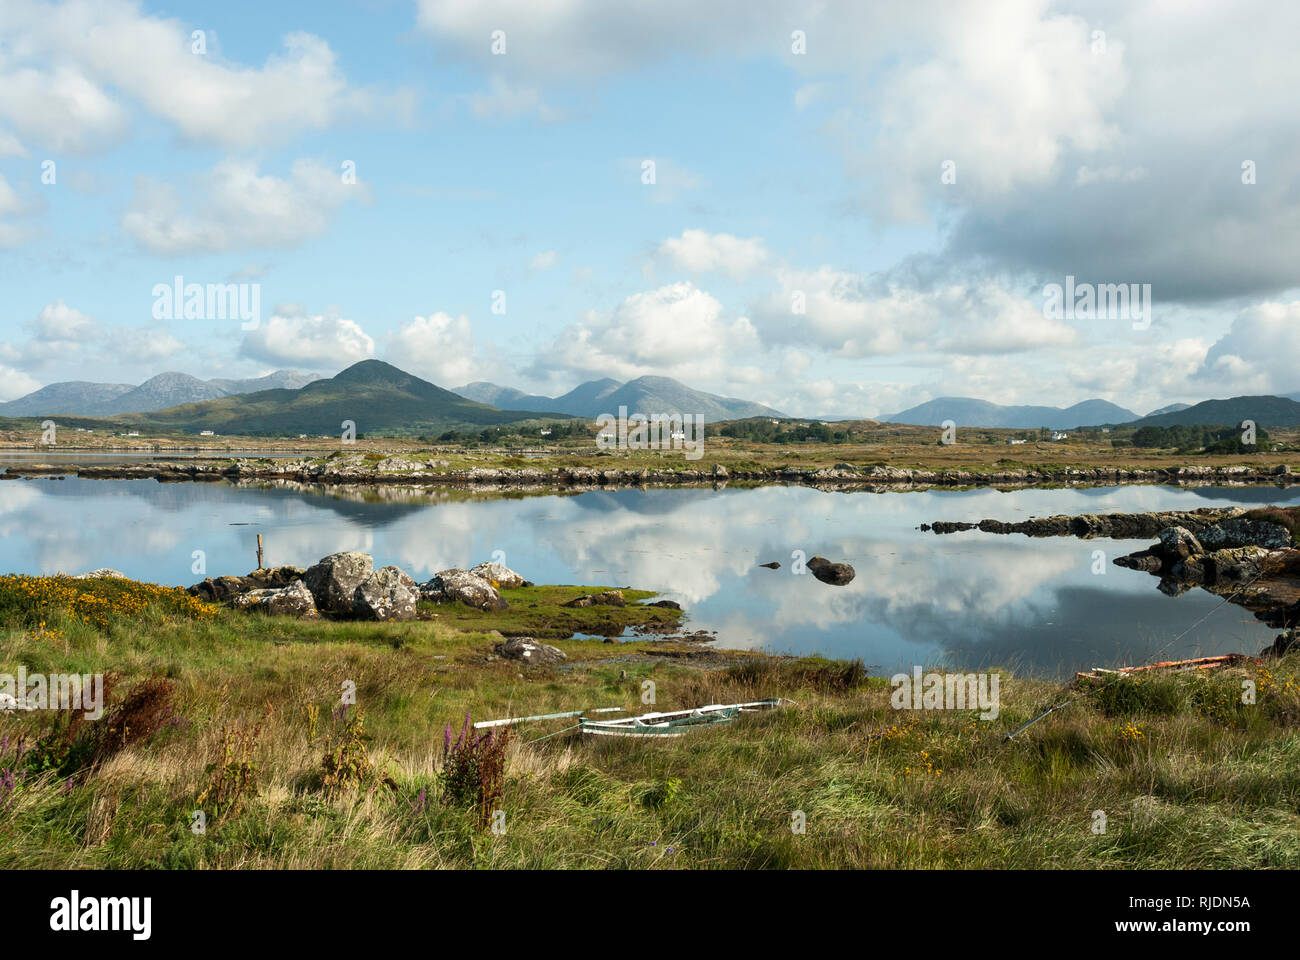 Reflections on a summers day in the tranquil Derryclare Lough with the twelve Bens Mountains in the background. - Stock Image